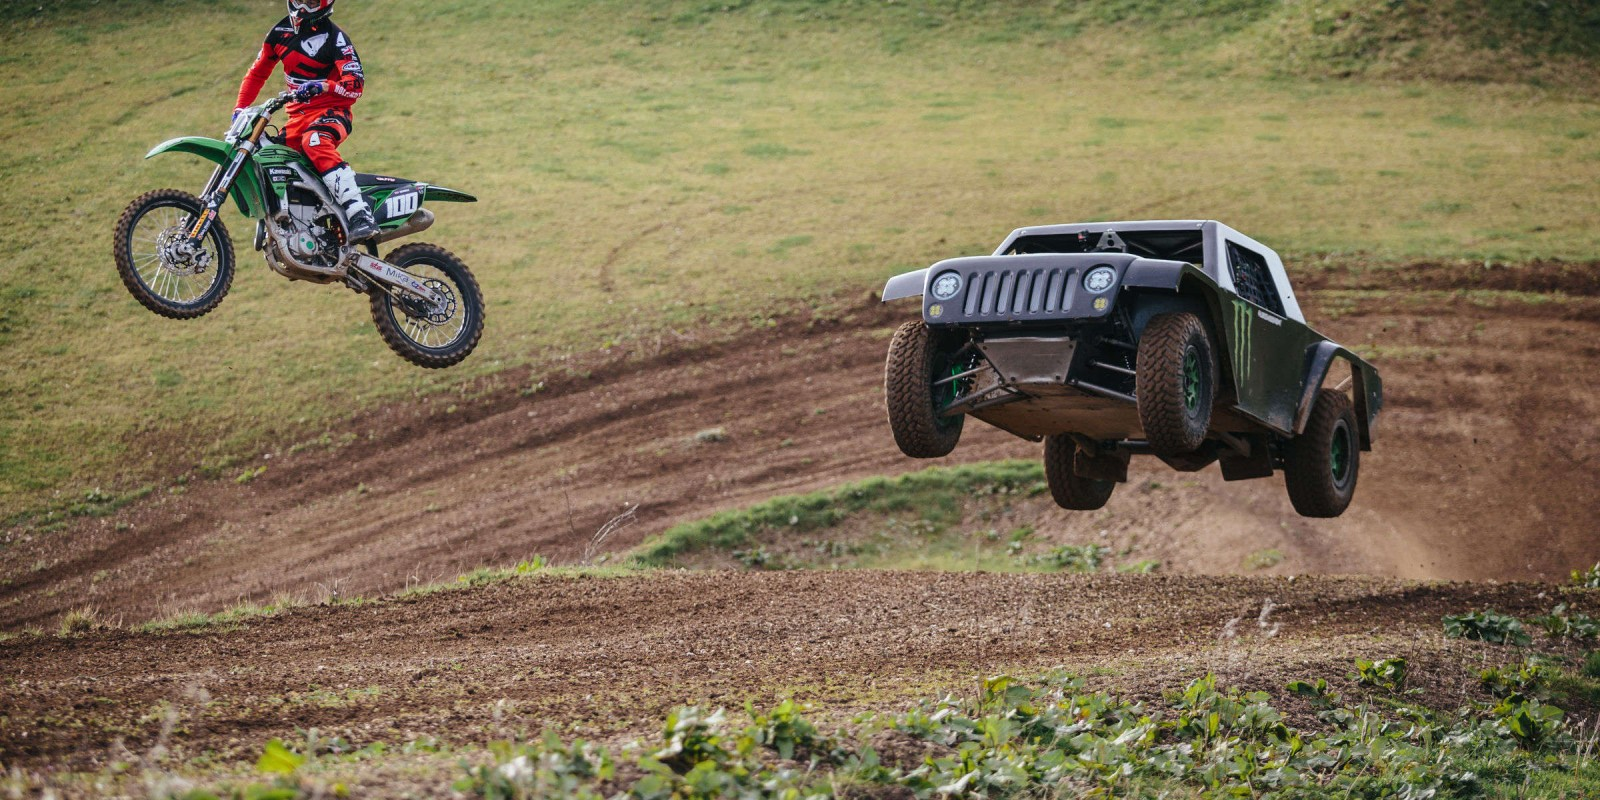 Shots of Luke Woodham and Tommy Searle at Matterley Basin